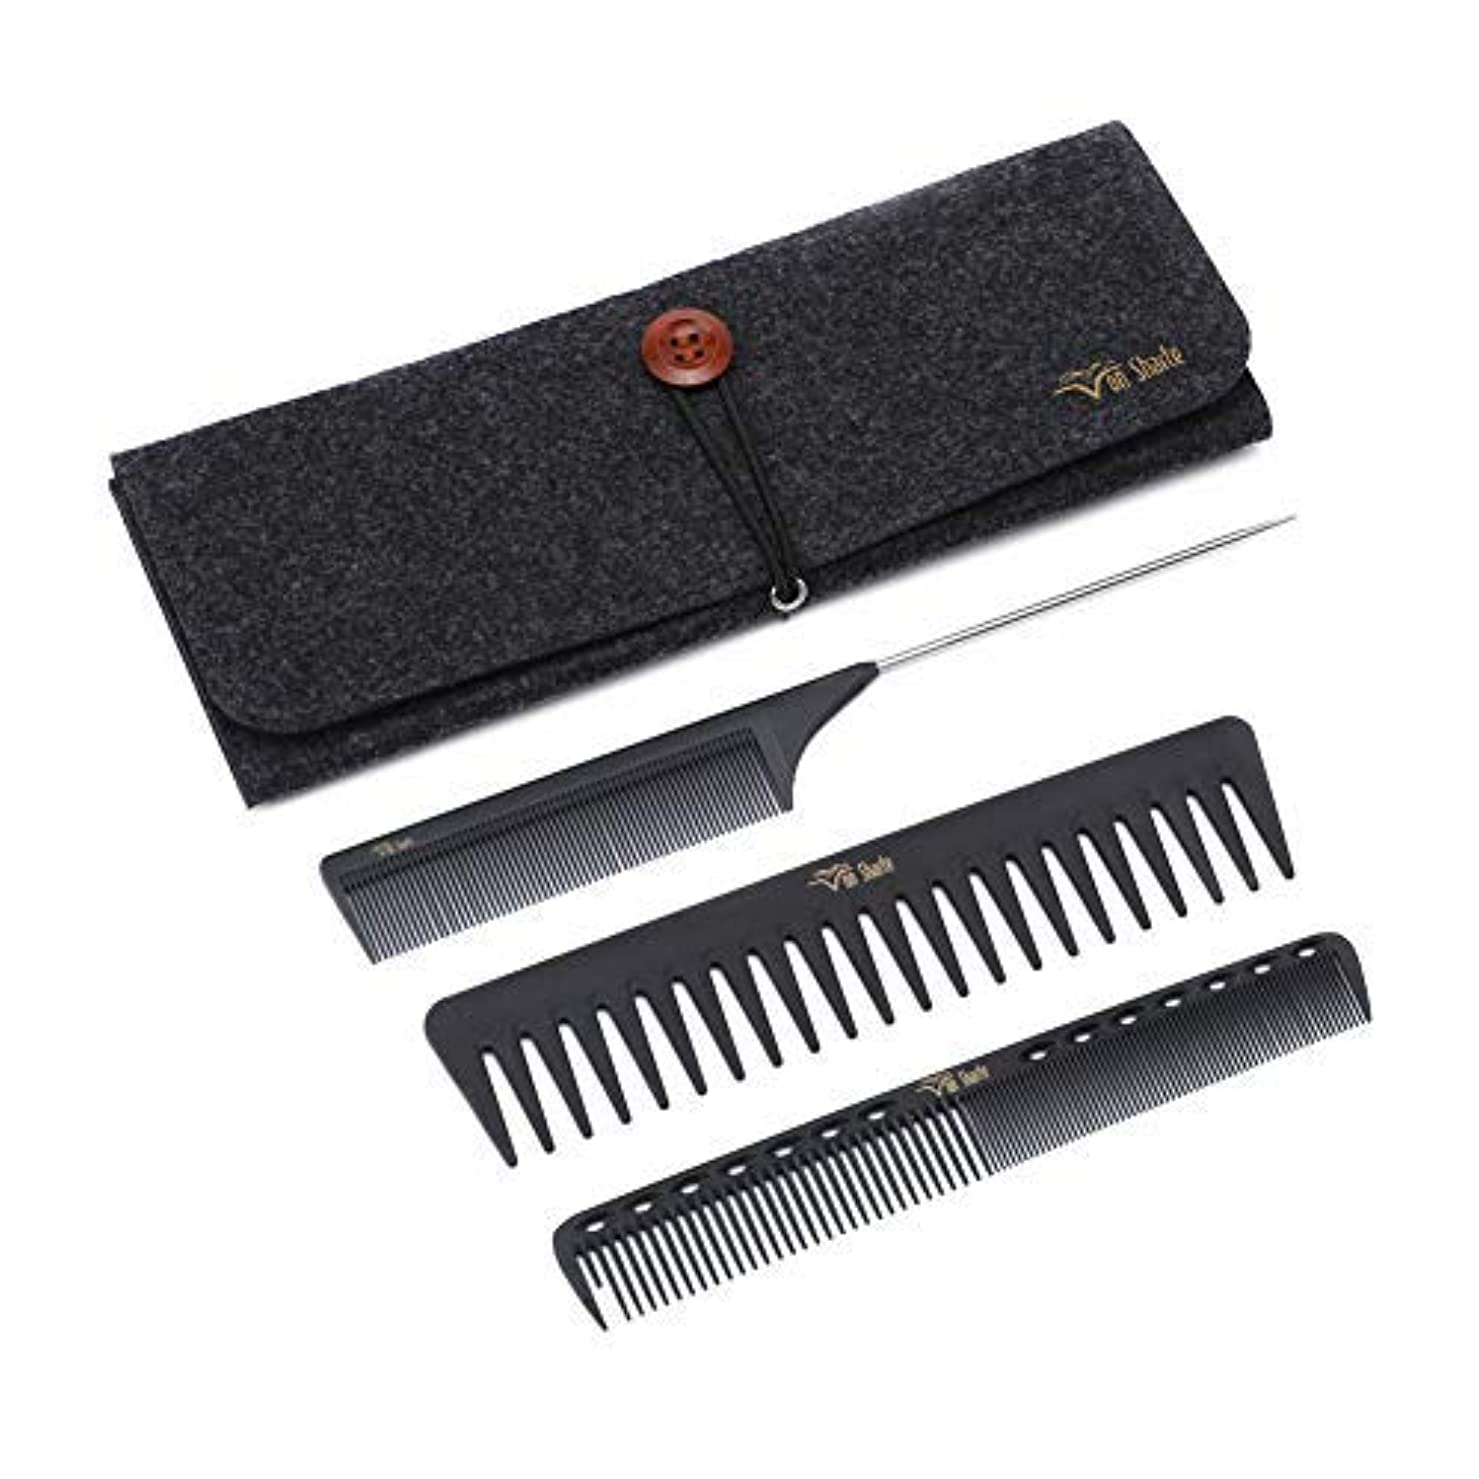 銀行マイクきちんとしたStyling Comb Set,Hairdresser Barber Comb Cutting Hair Comb Carbon Fiber Wide Tooth Comb Metal Rat Pin Tail Comb...